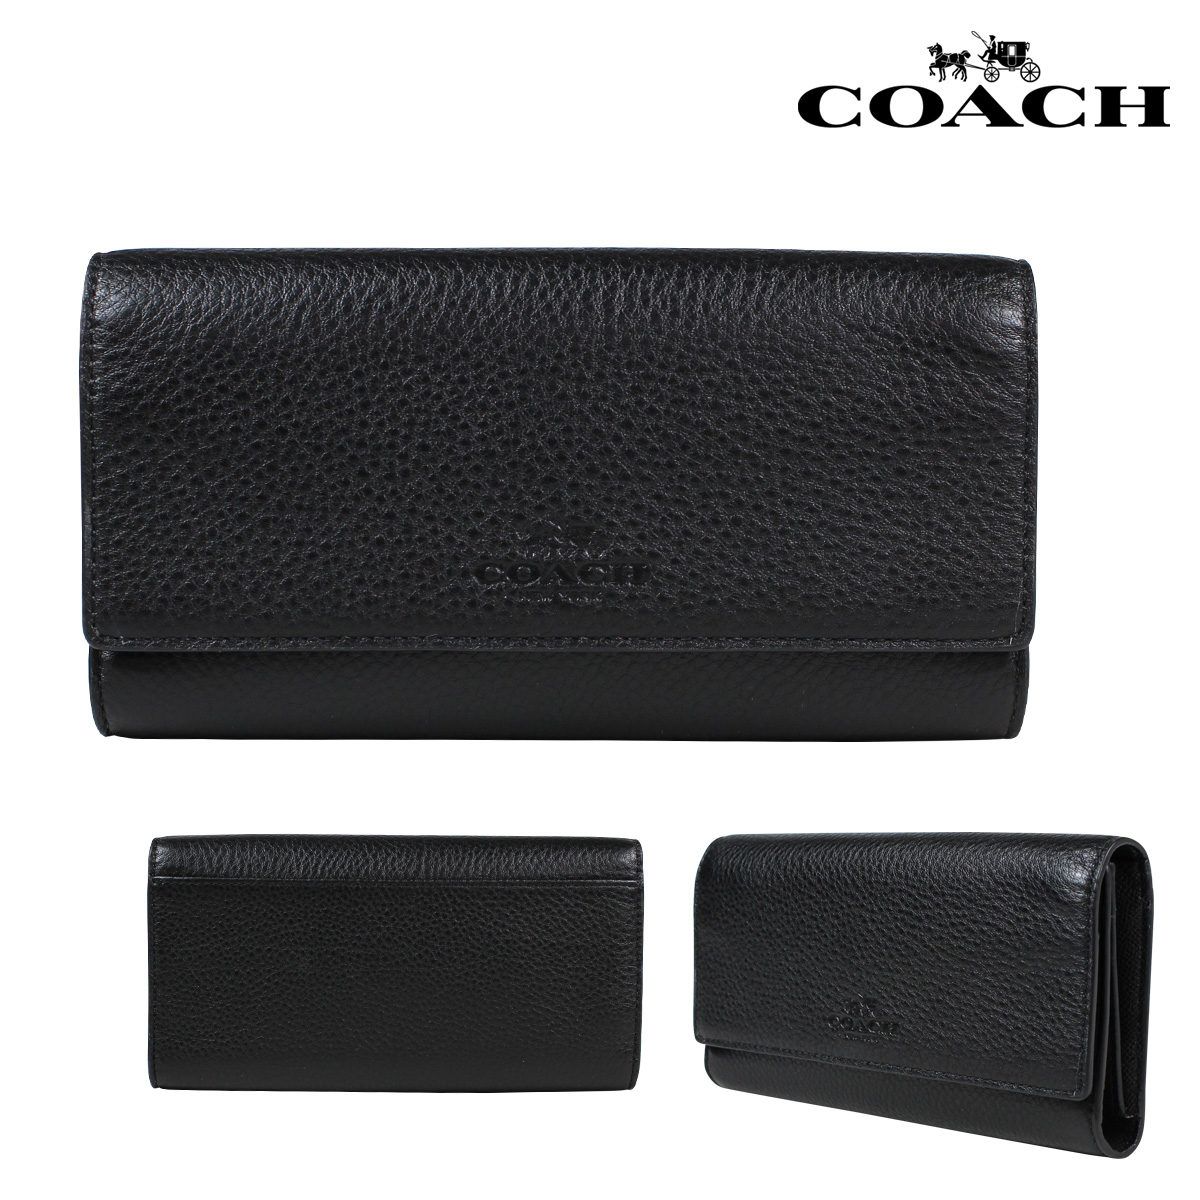 buy popular a8632 78dd7 COACH coach wallet long wallet card case F53708 black Lady's